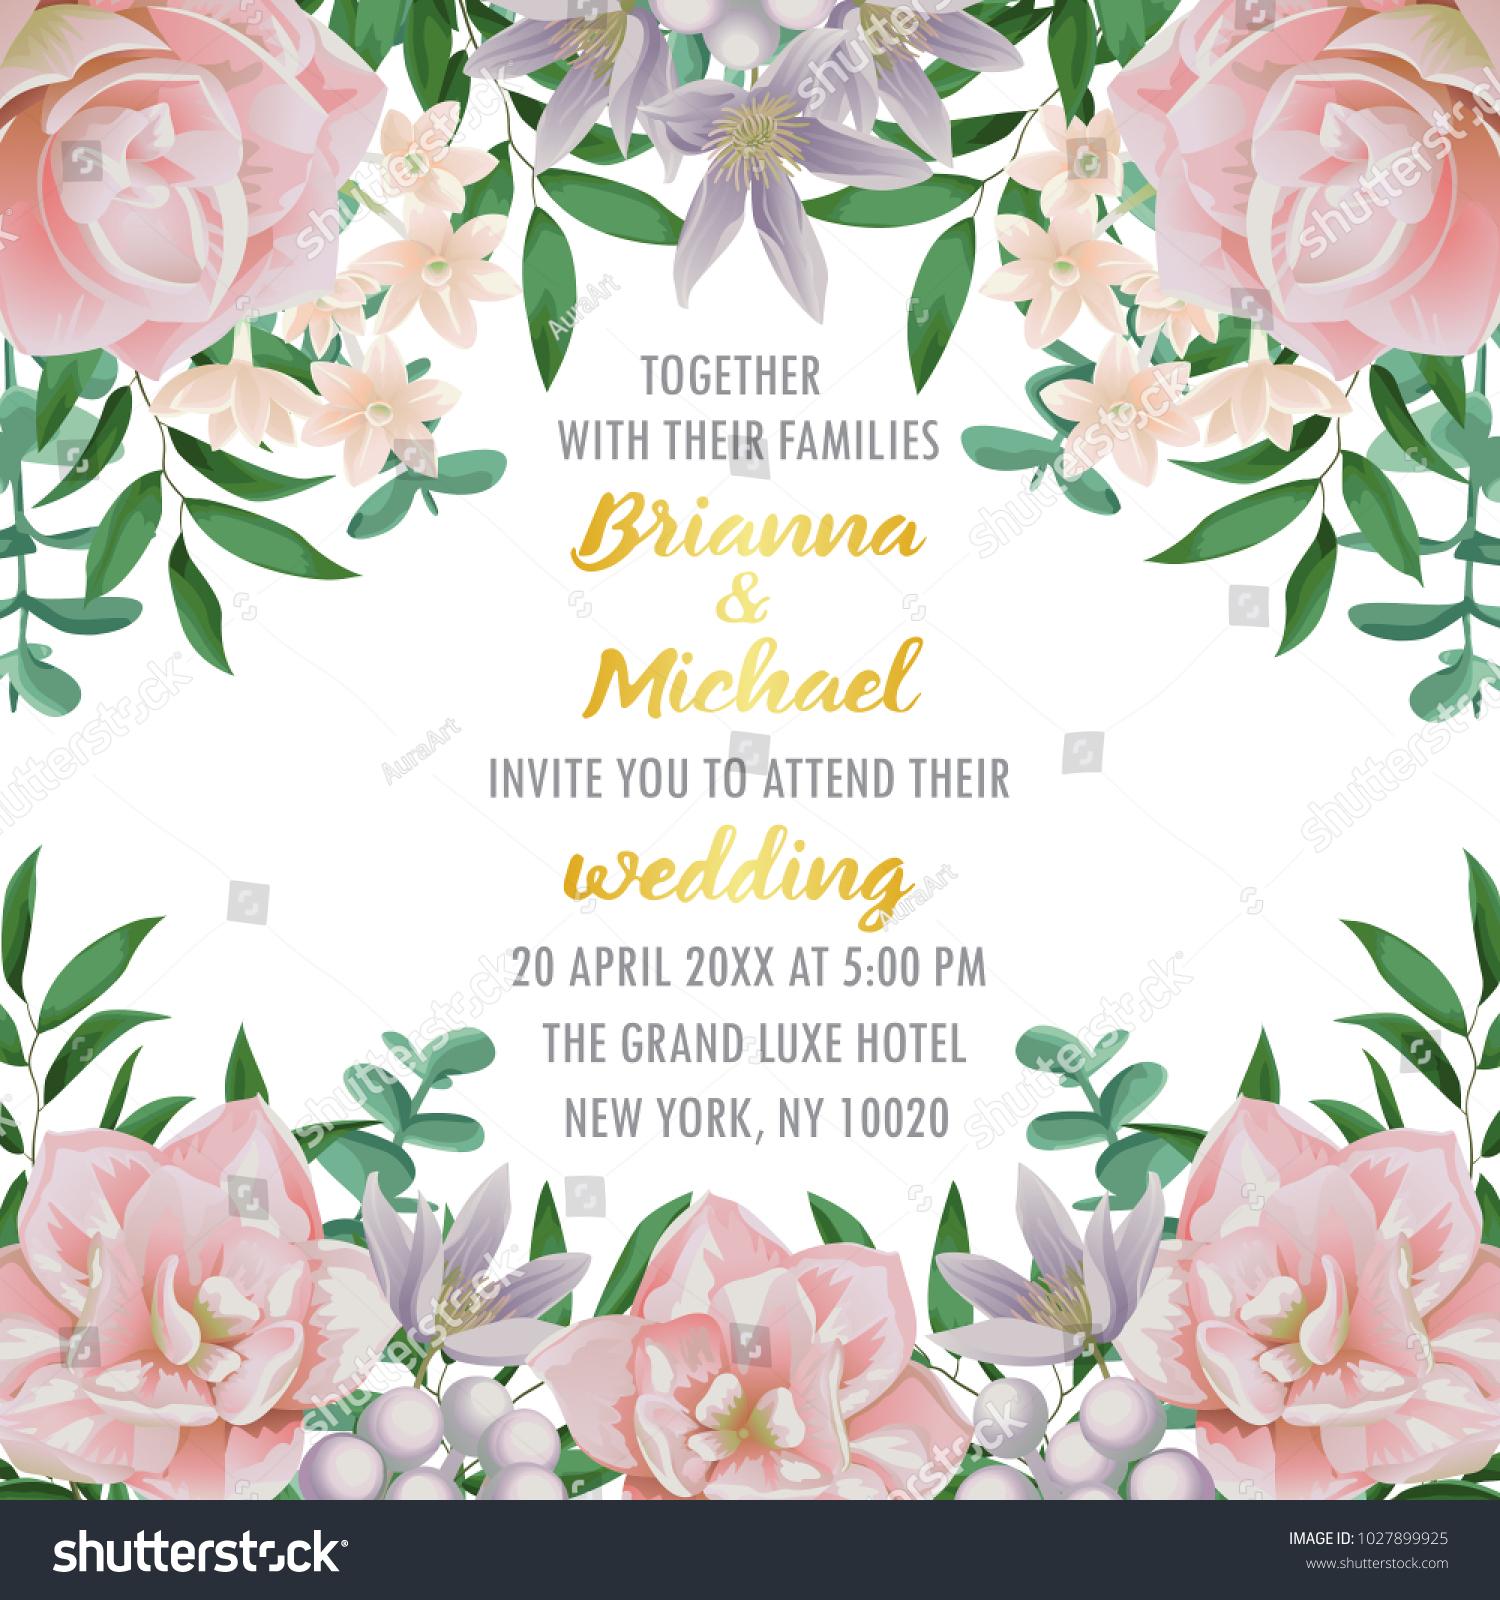 Floral Wedding Invitation Flowers Herb Bushes Stock Vector ...